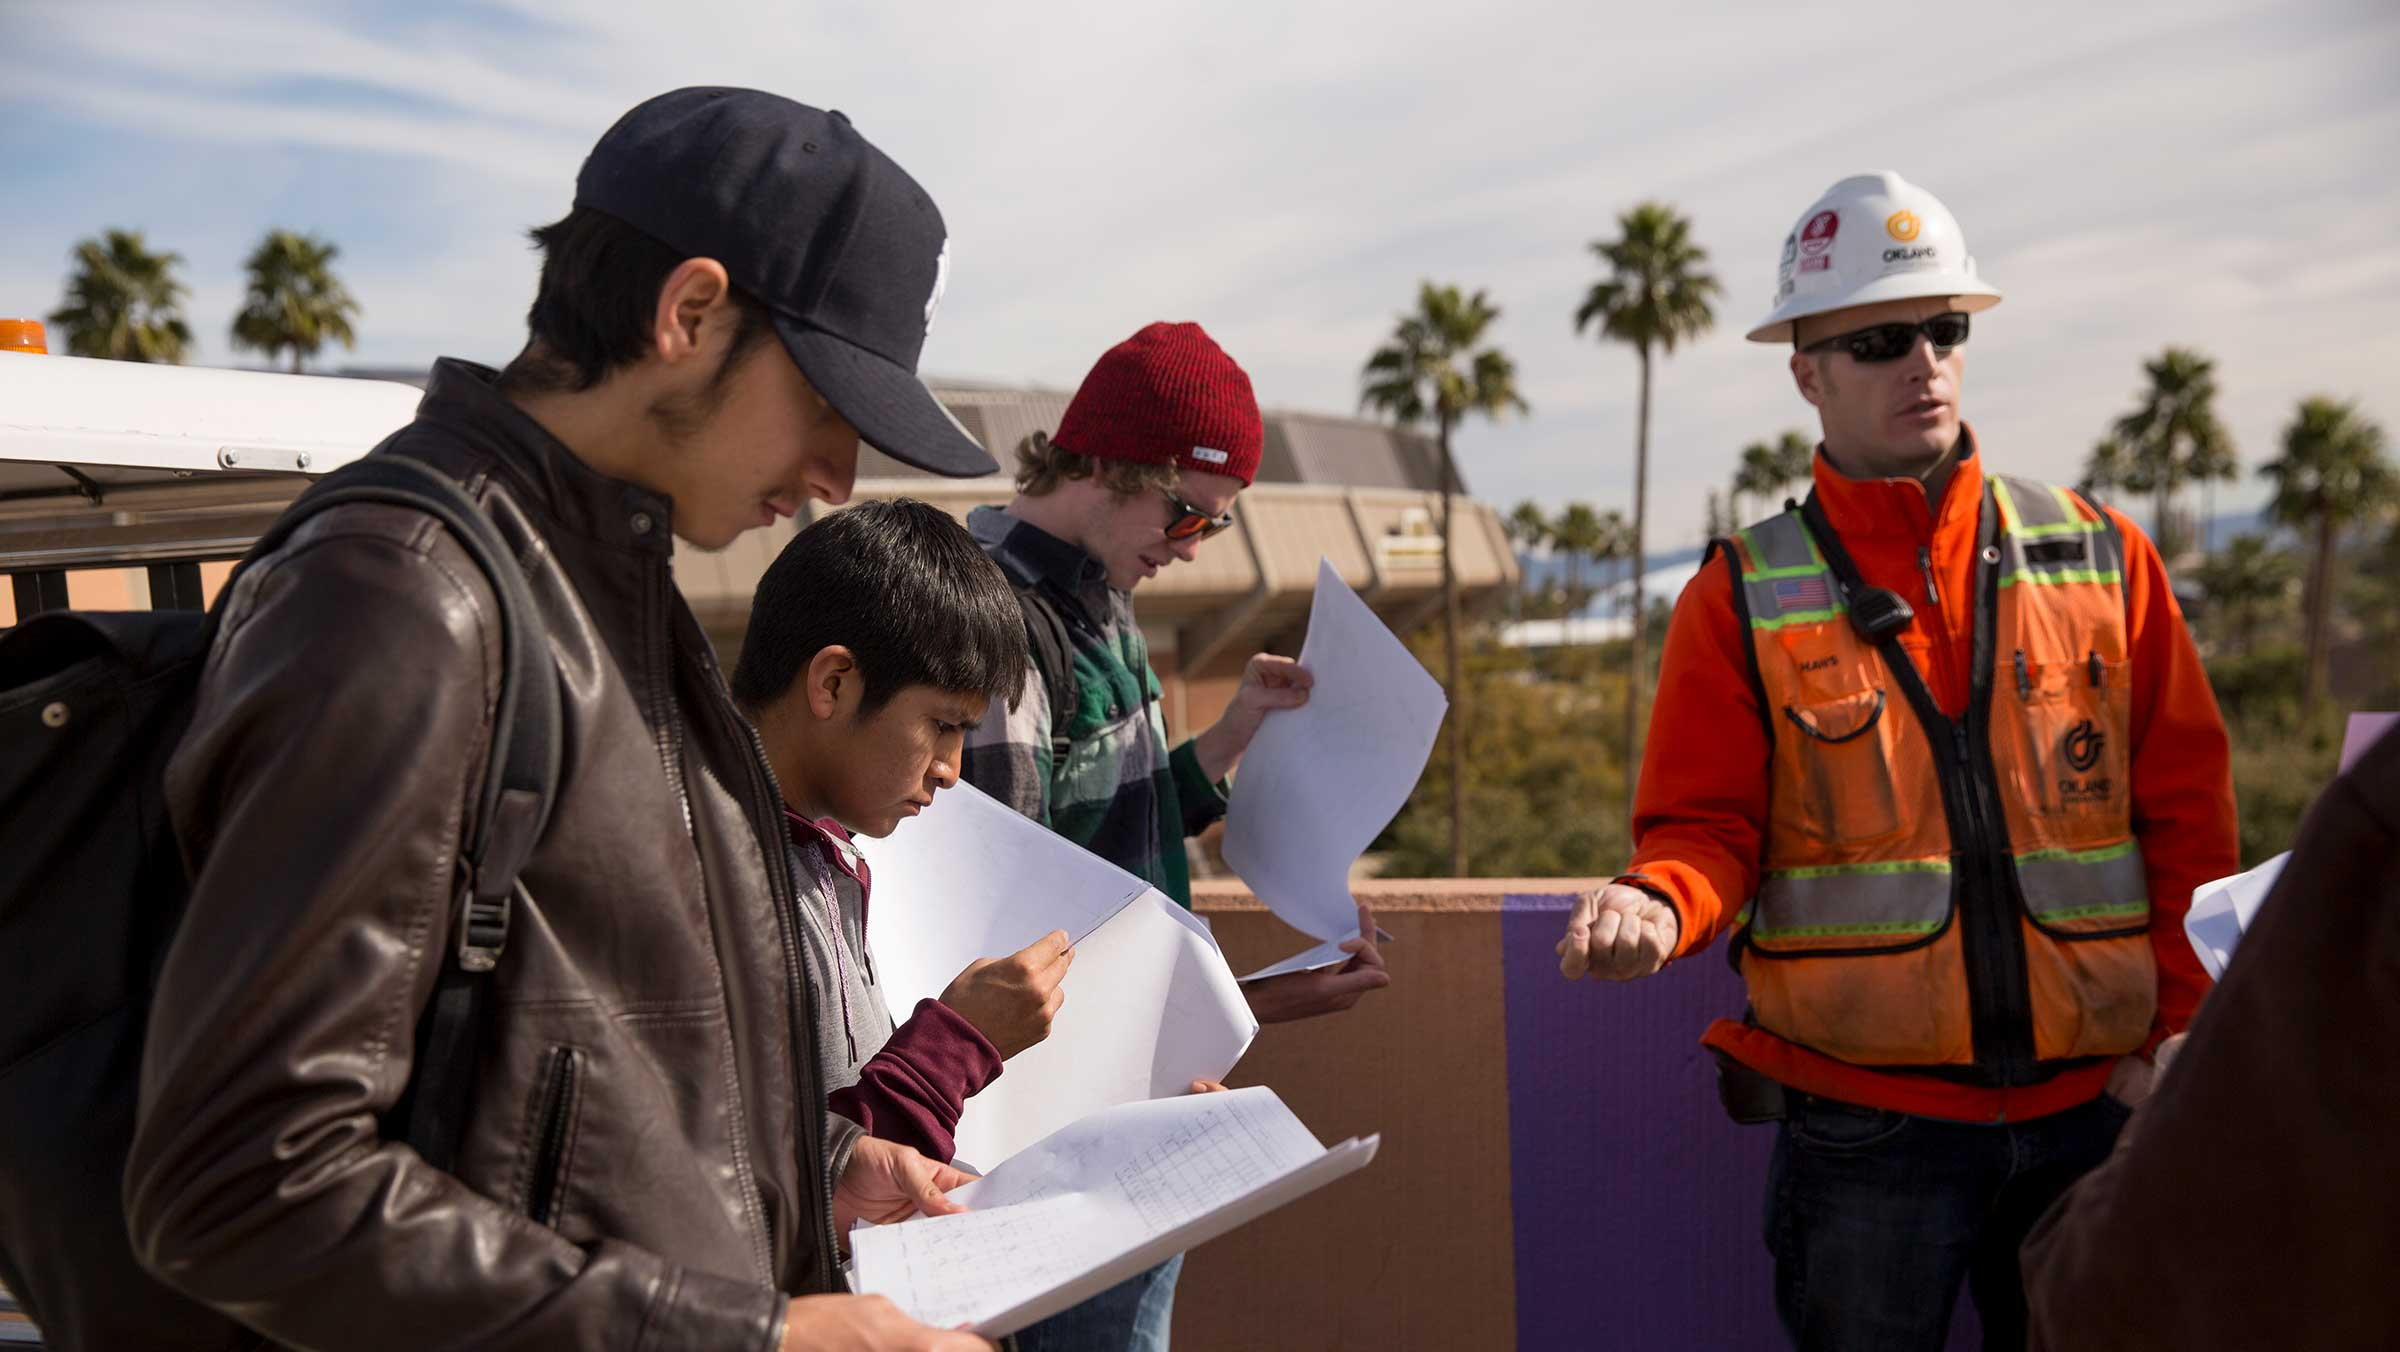 A group of students stand with their professor in class at a construction site.